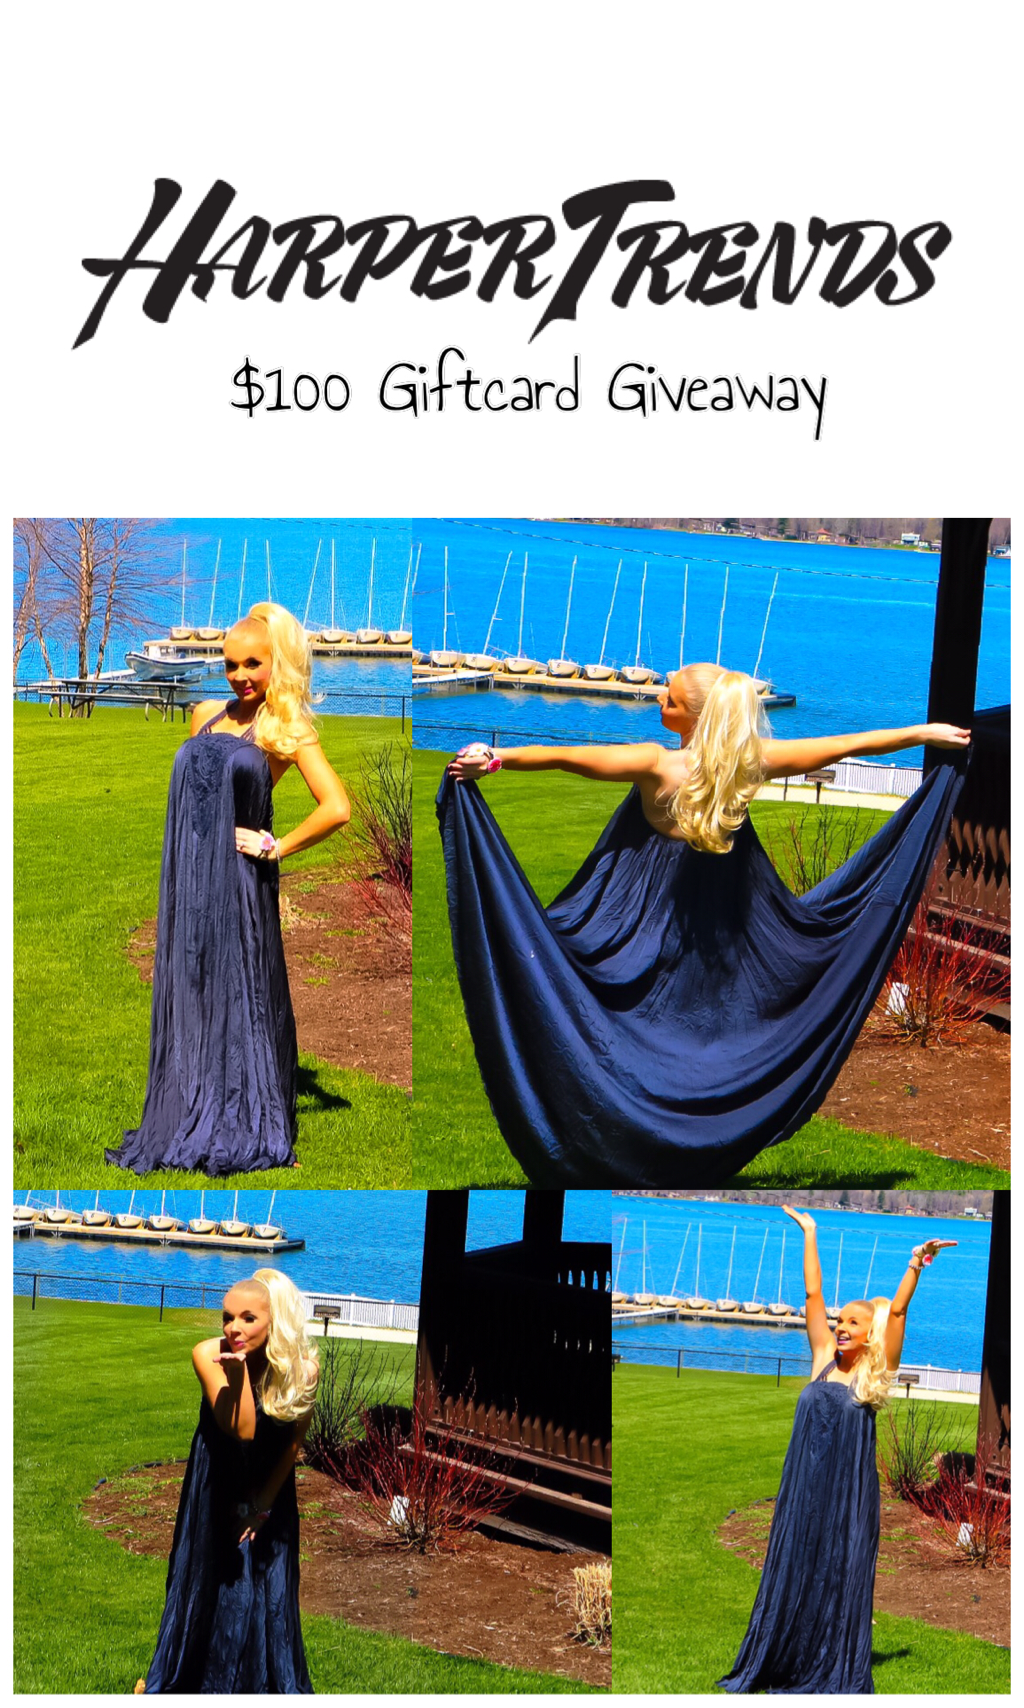 HARPER TRENDS GRECIAN GODDESS MAXI DRESS $100 GIFTCARD GIVEAWAY